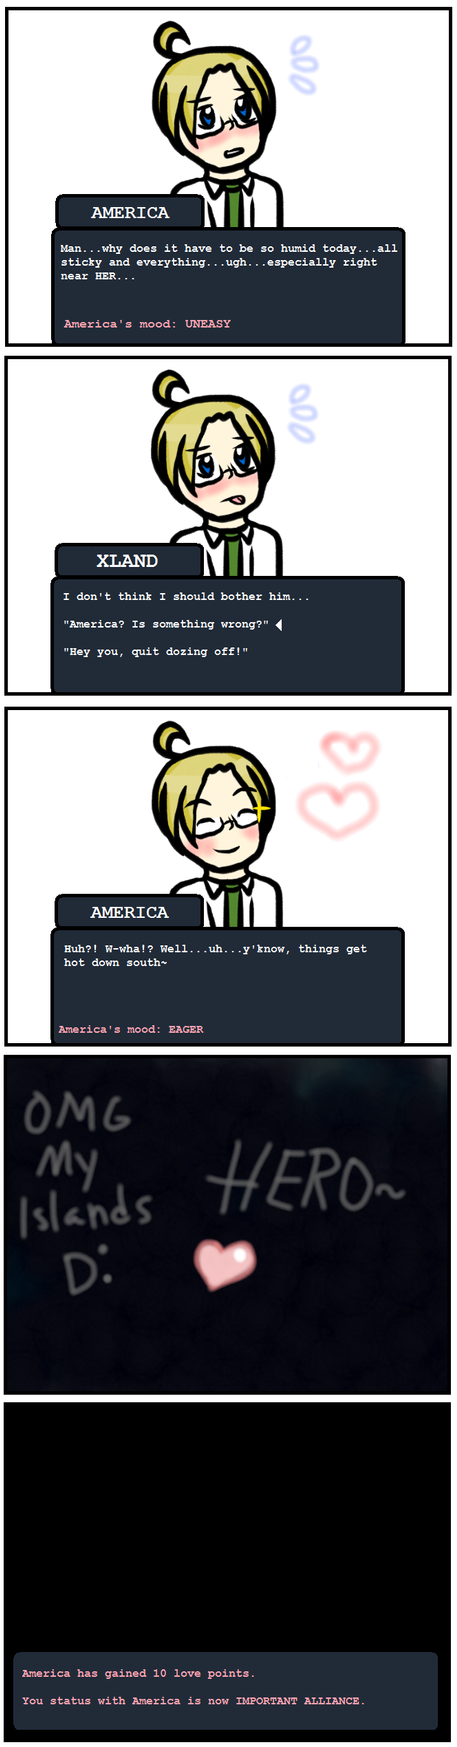 American dating sims